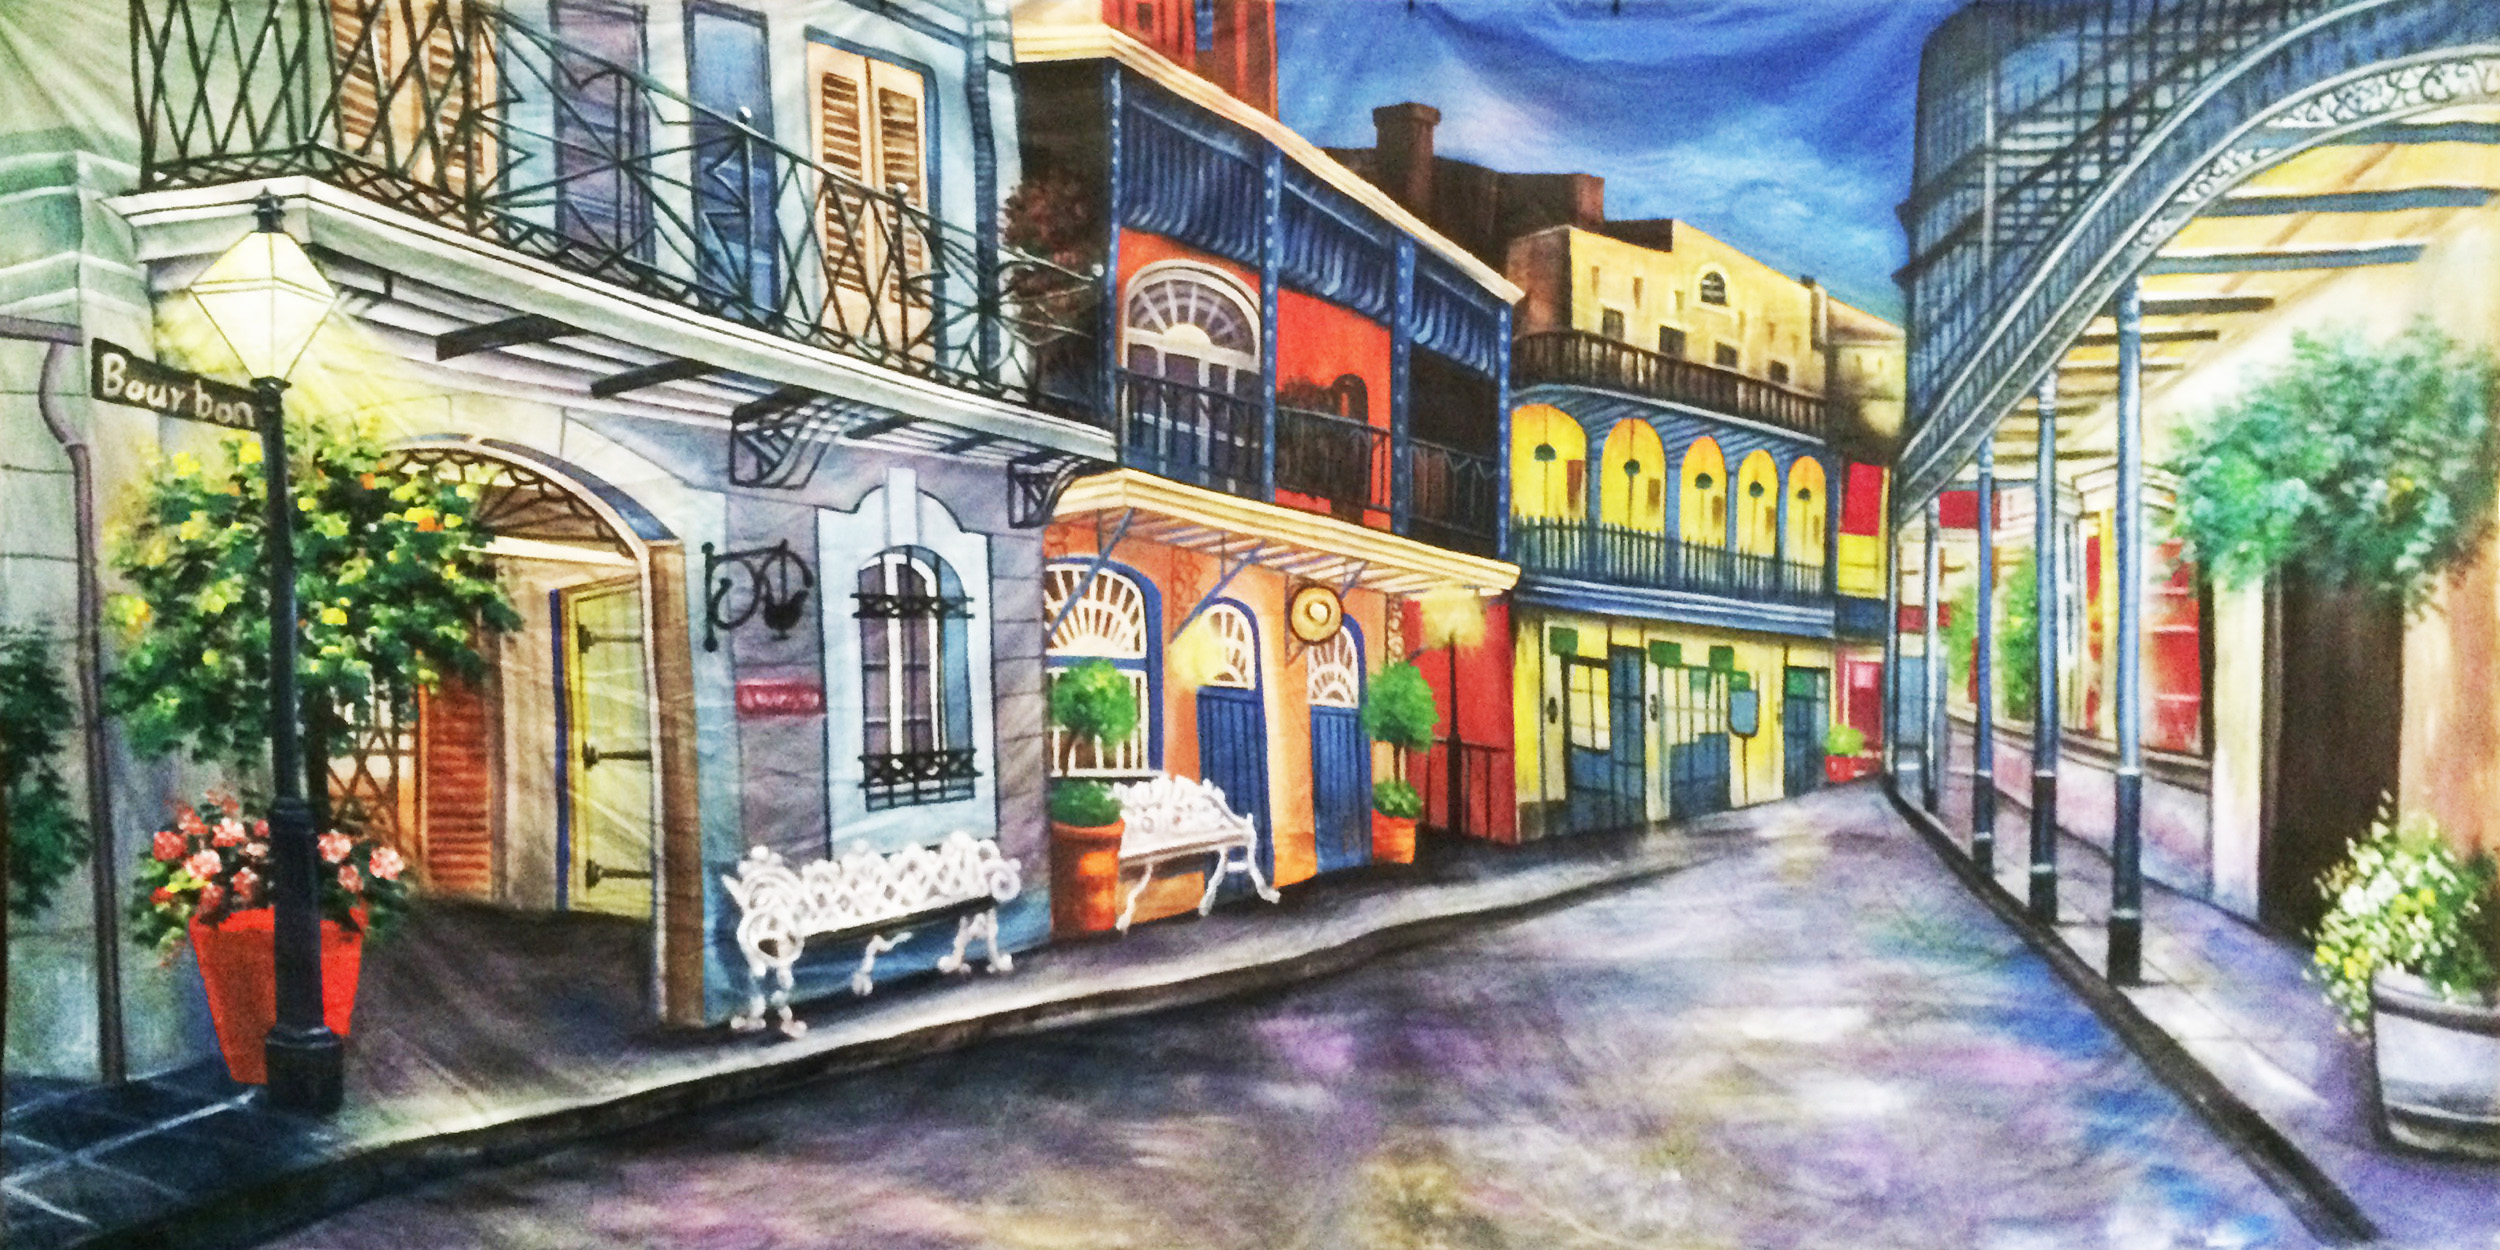 Backdrop - New Orleans - Bourbon Street  Measures approximately 6m x 3m (20' x 10')  Can be supplied with freestanding, goal post style stand